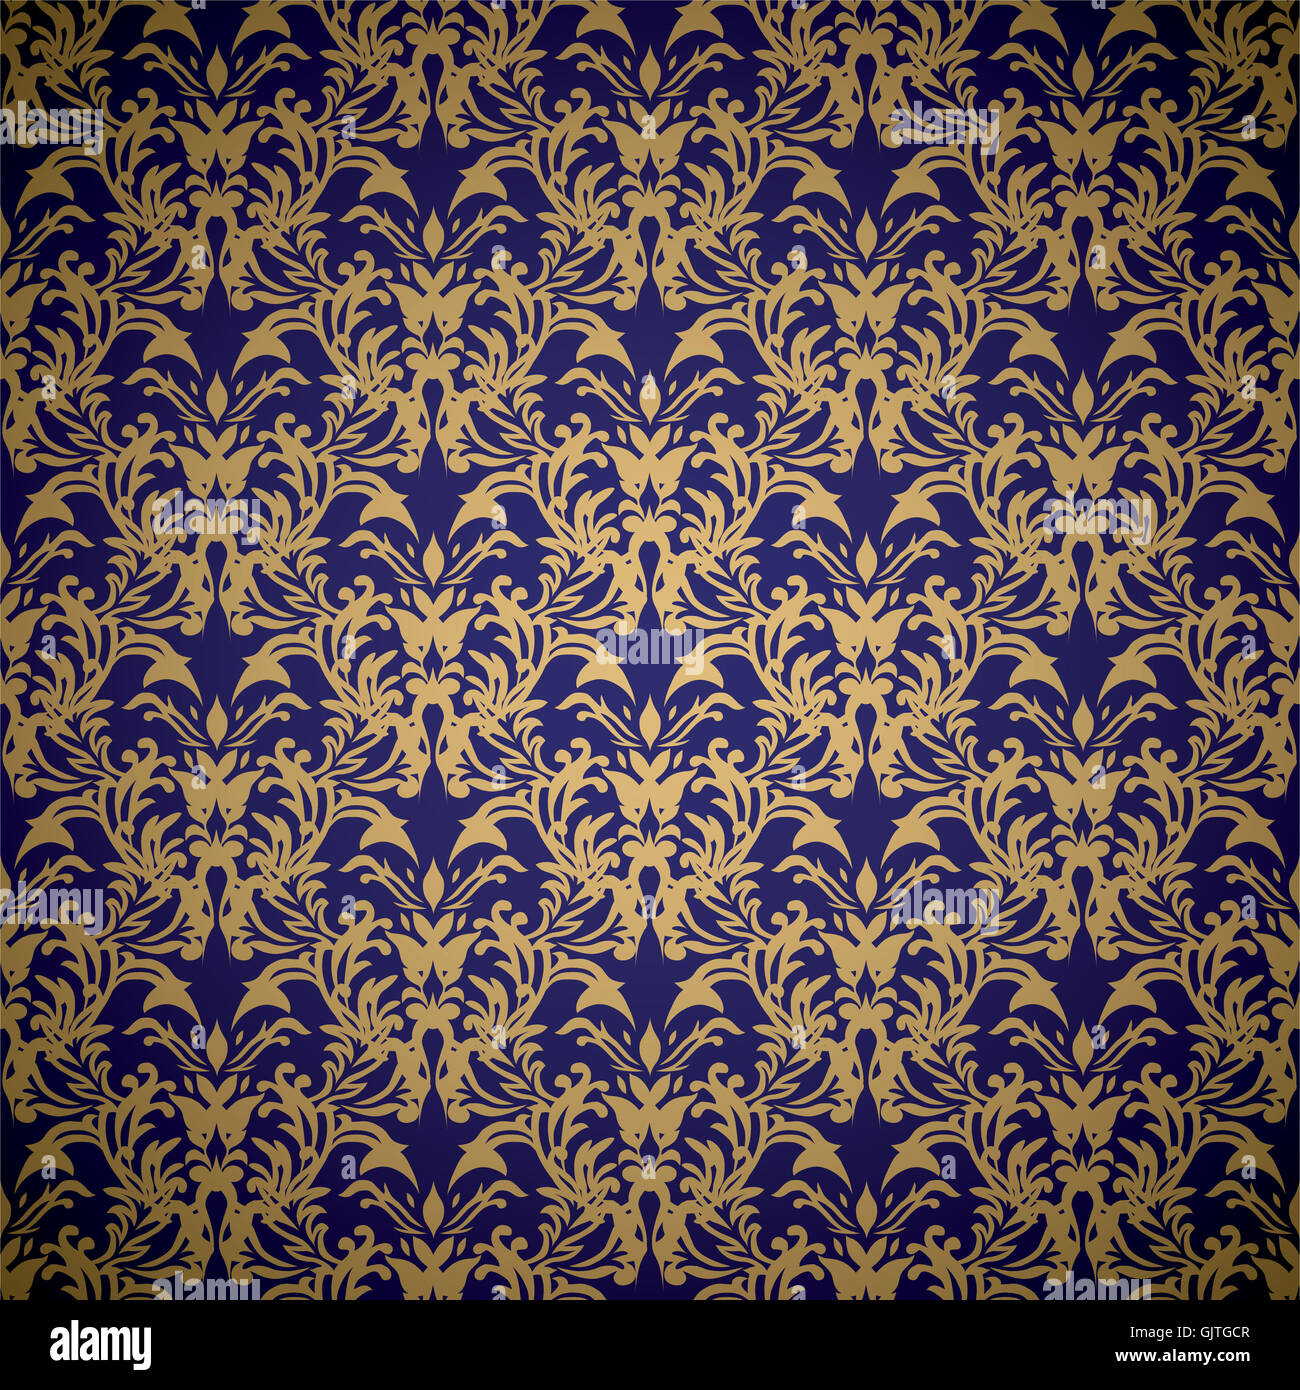 decorative blue gold royal seamless photos decorative blue gold royal seamless images alamy. Black Bedroom Furniture Sets. Home Design Ideas